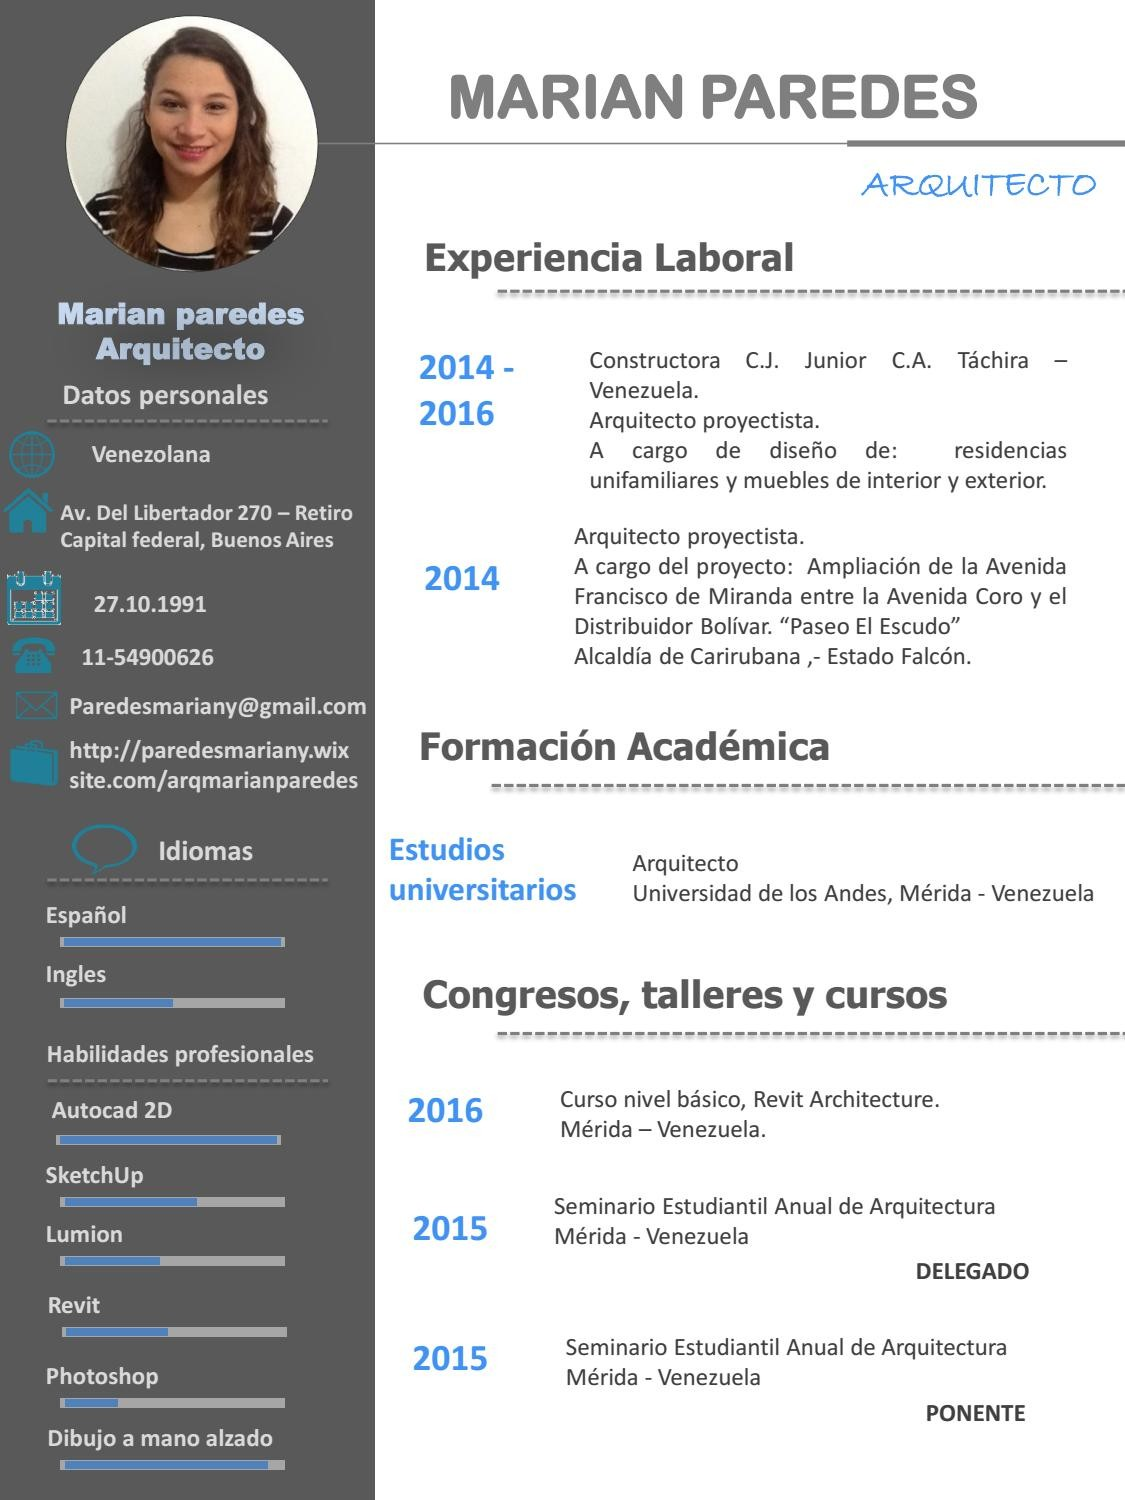 resume template 1 page  Cv marian paredes arquitecto by Marian Paredes - Issuu - resume template 1 page